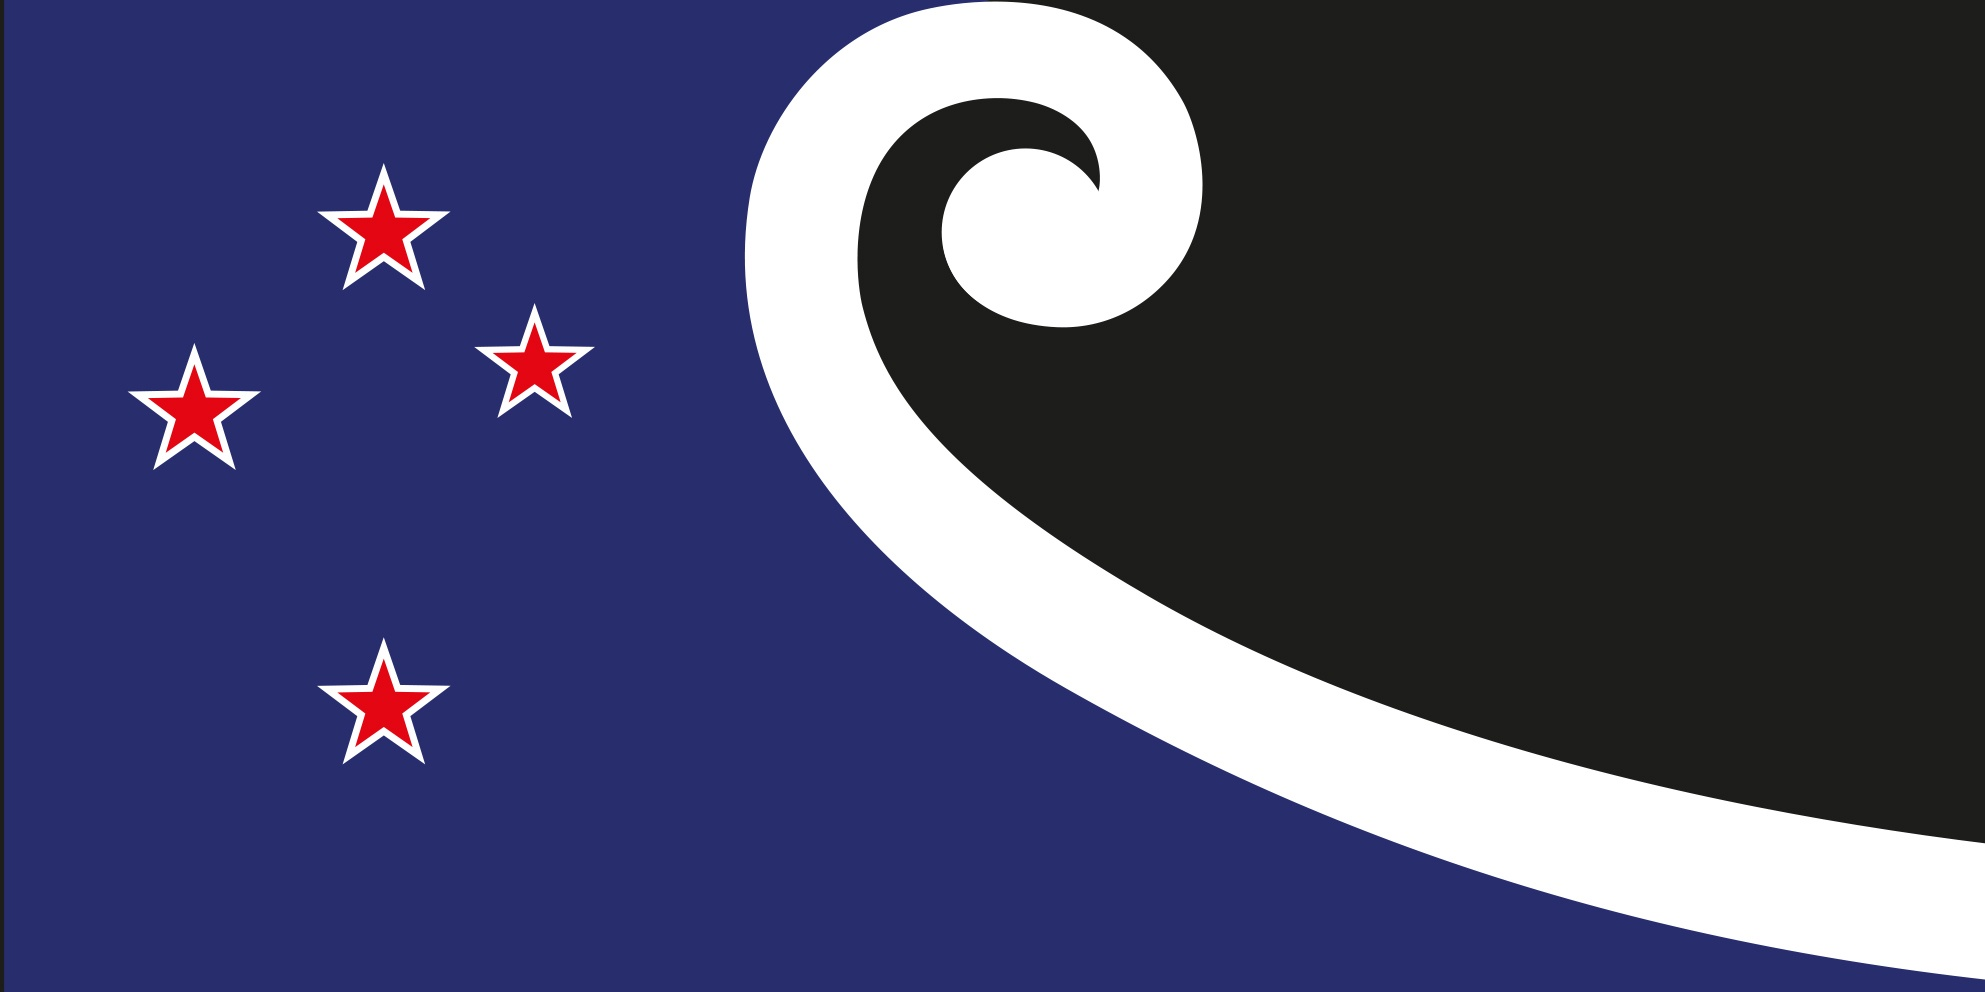 filenz flag design finding unity in community by dave sauvagejpg - Flag Design Ideas